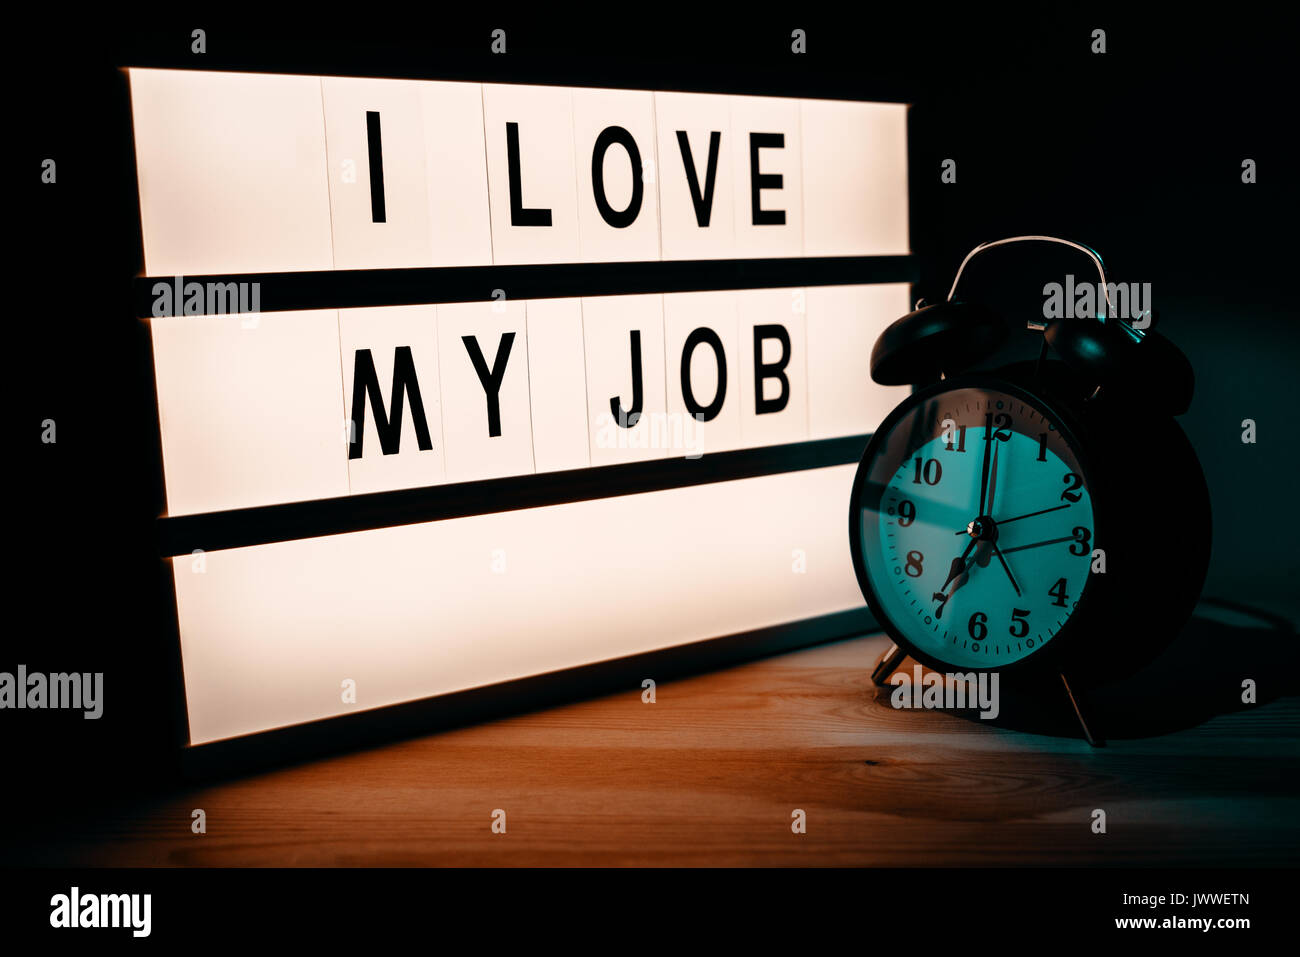 I love my job, business and occupation motivational message on lightbox in the office next to the vintage style Stock Photo